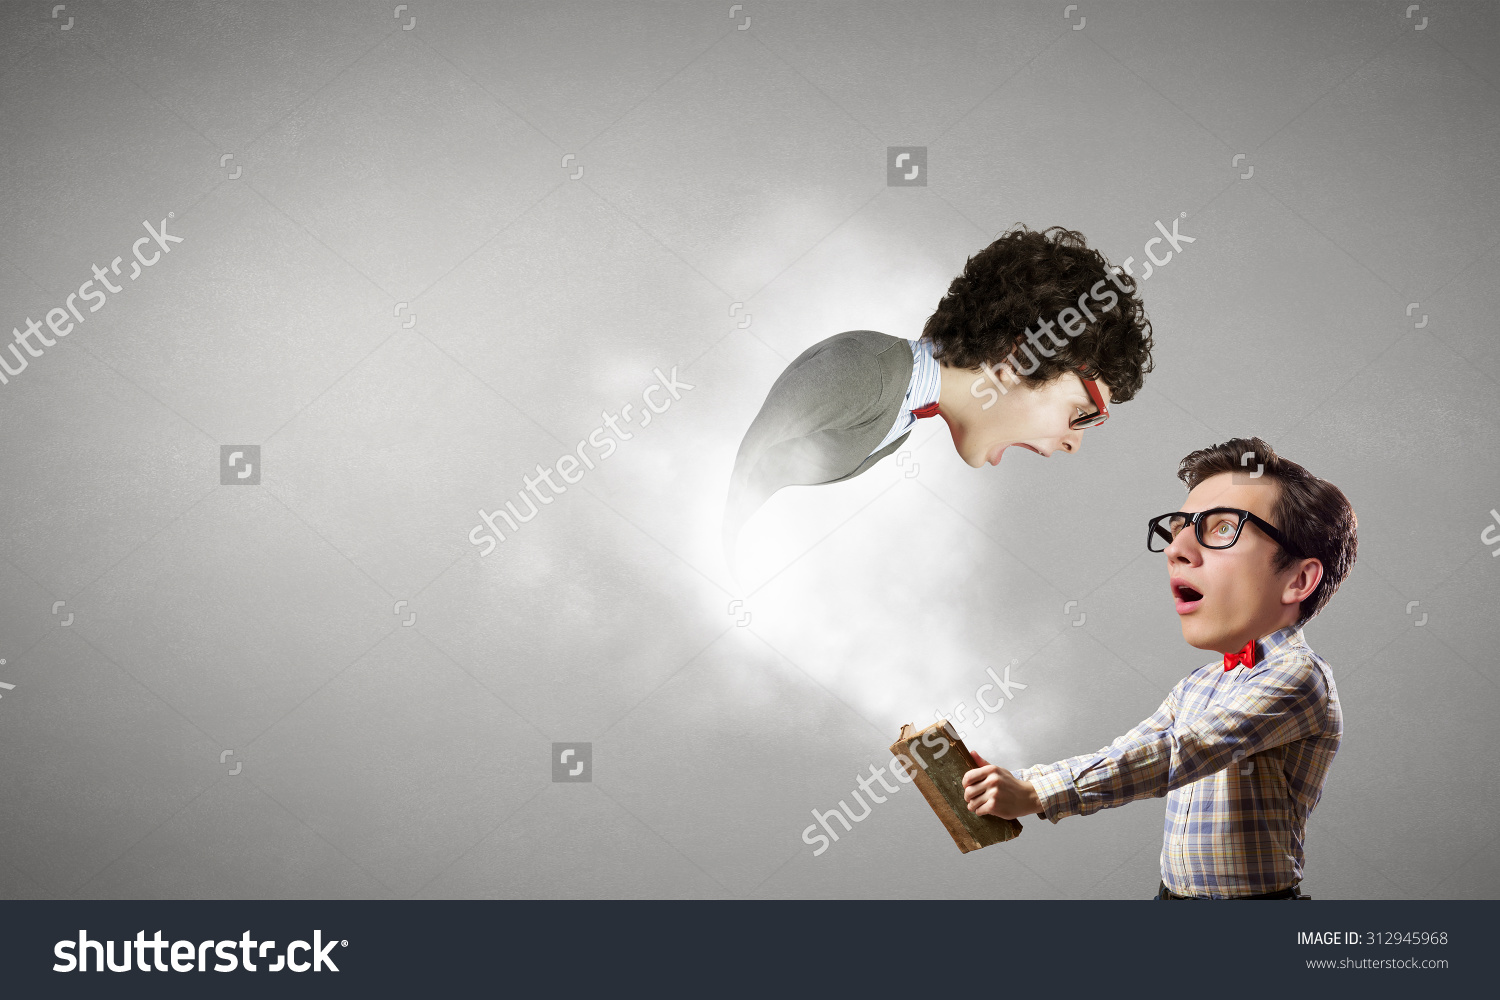 stock-photo-young-funny-man-in-glasses-with-big-head-312945968